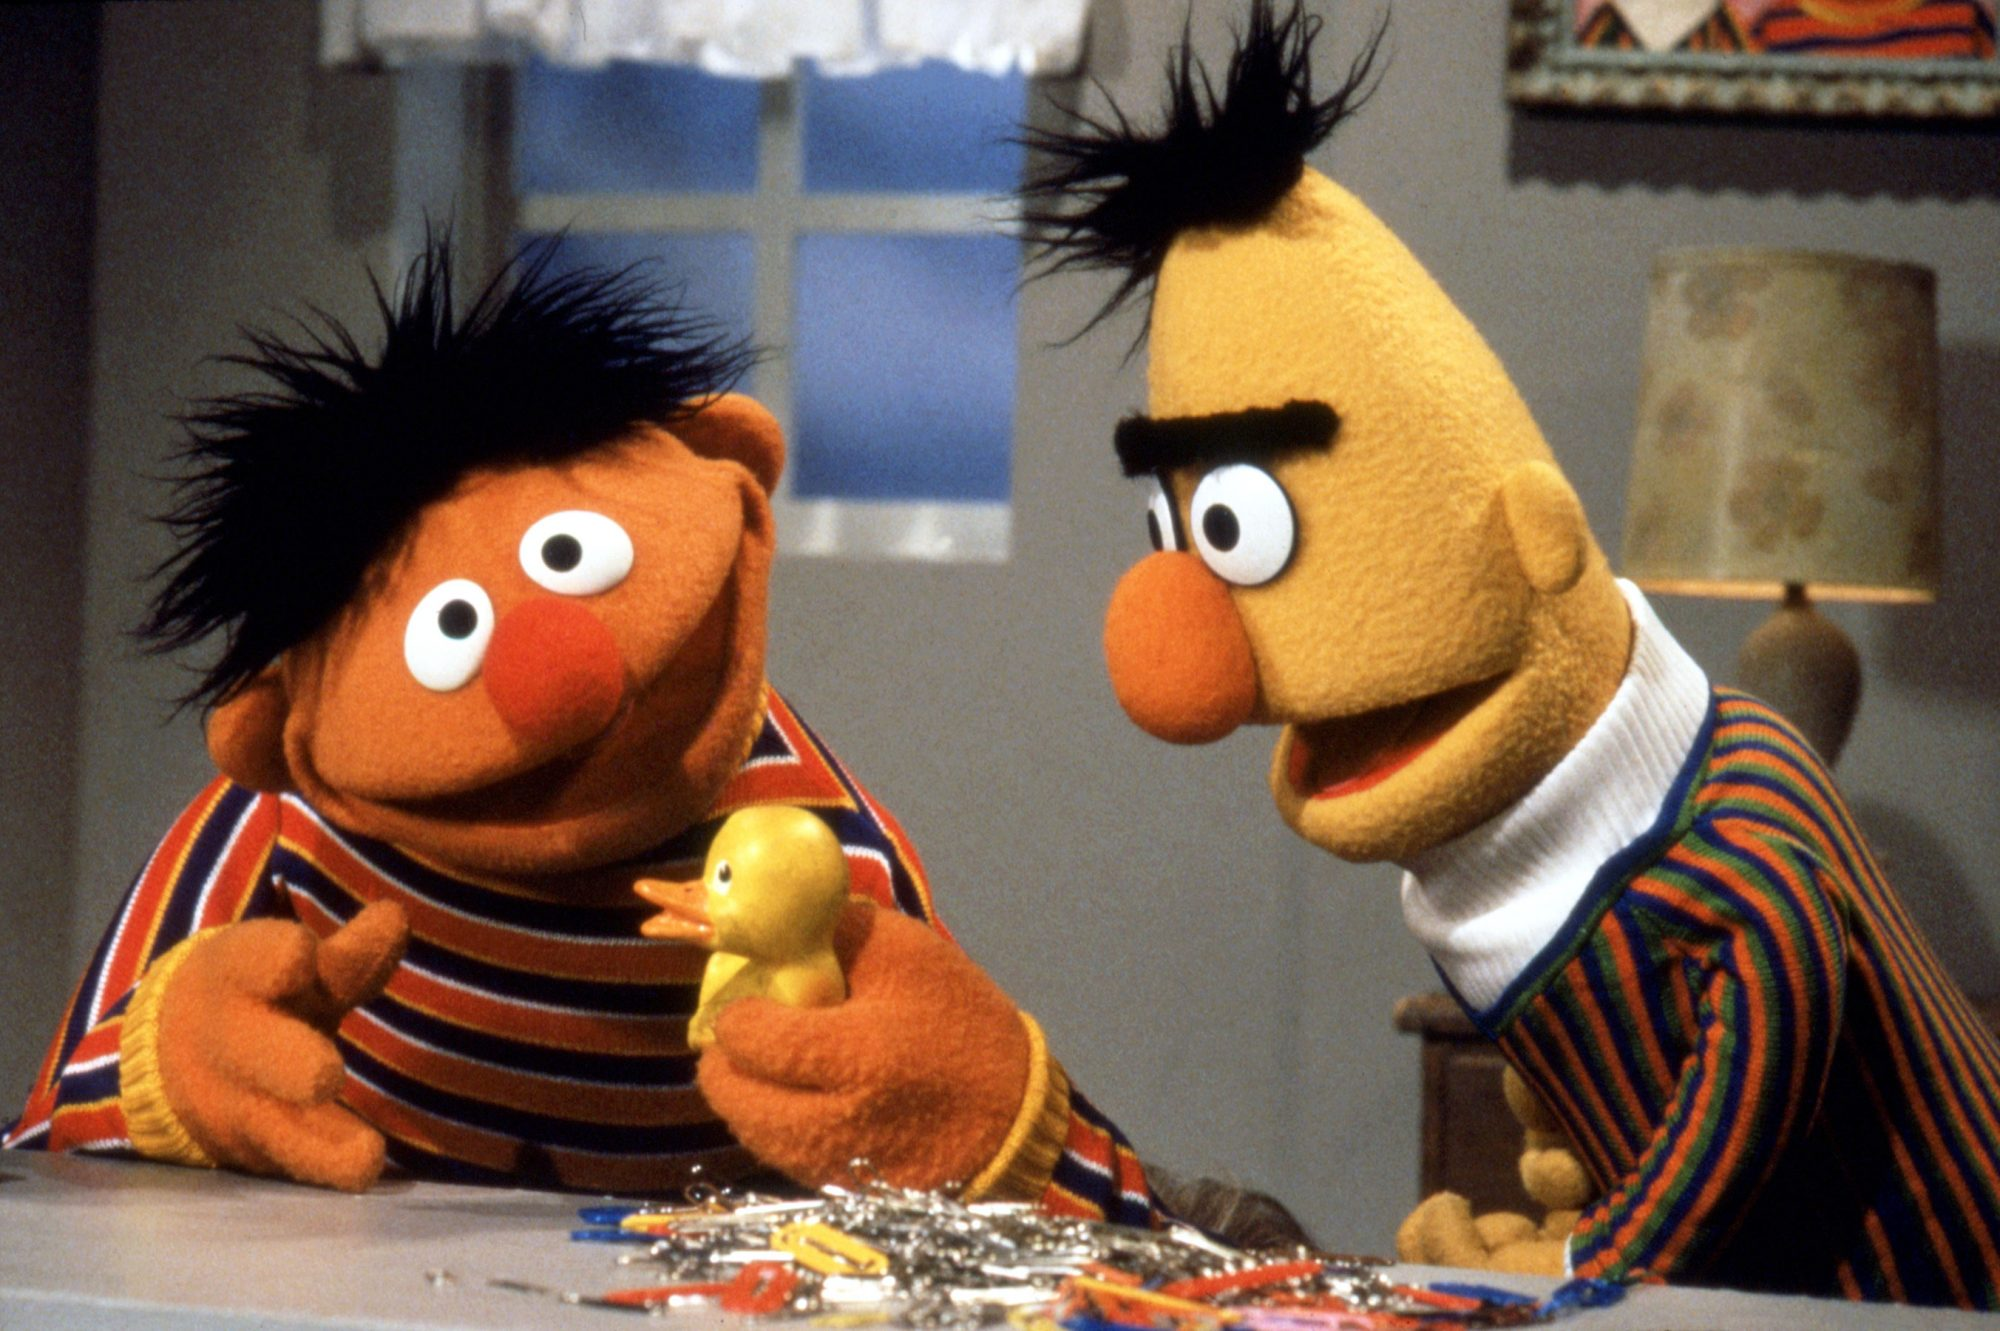 New Study Shows Sesame Street Viewership Can Lead to Kids' Success in School and Work rexfeatures_2599419a